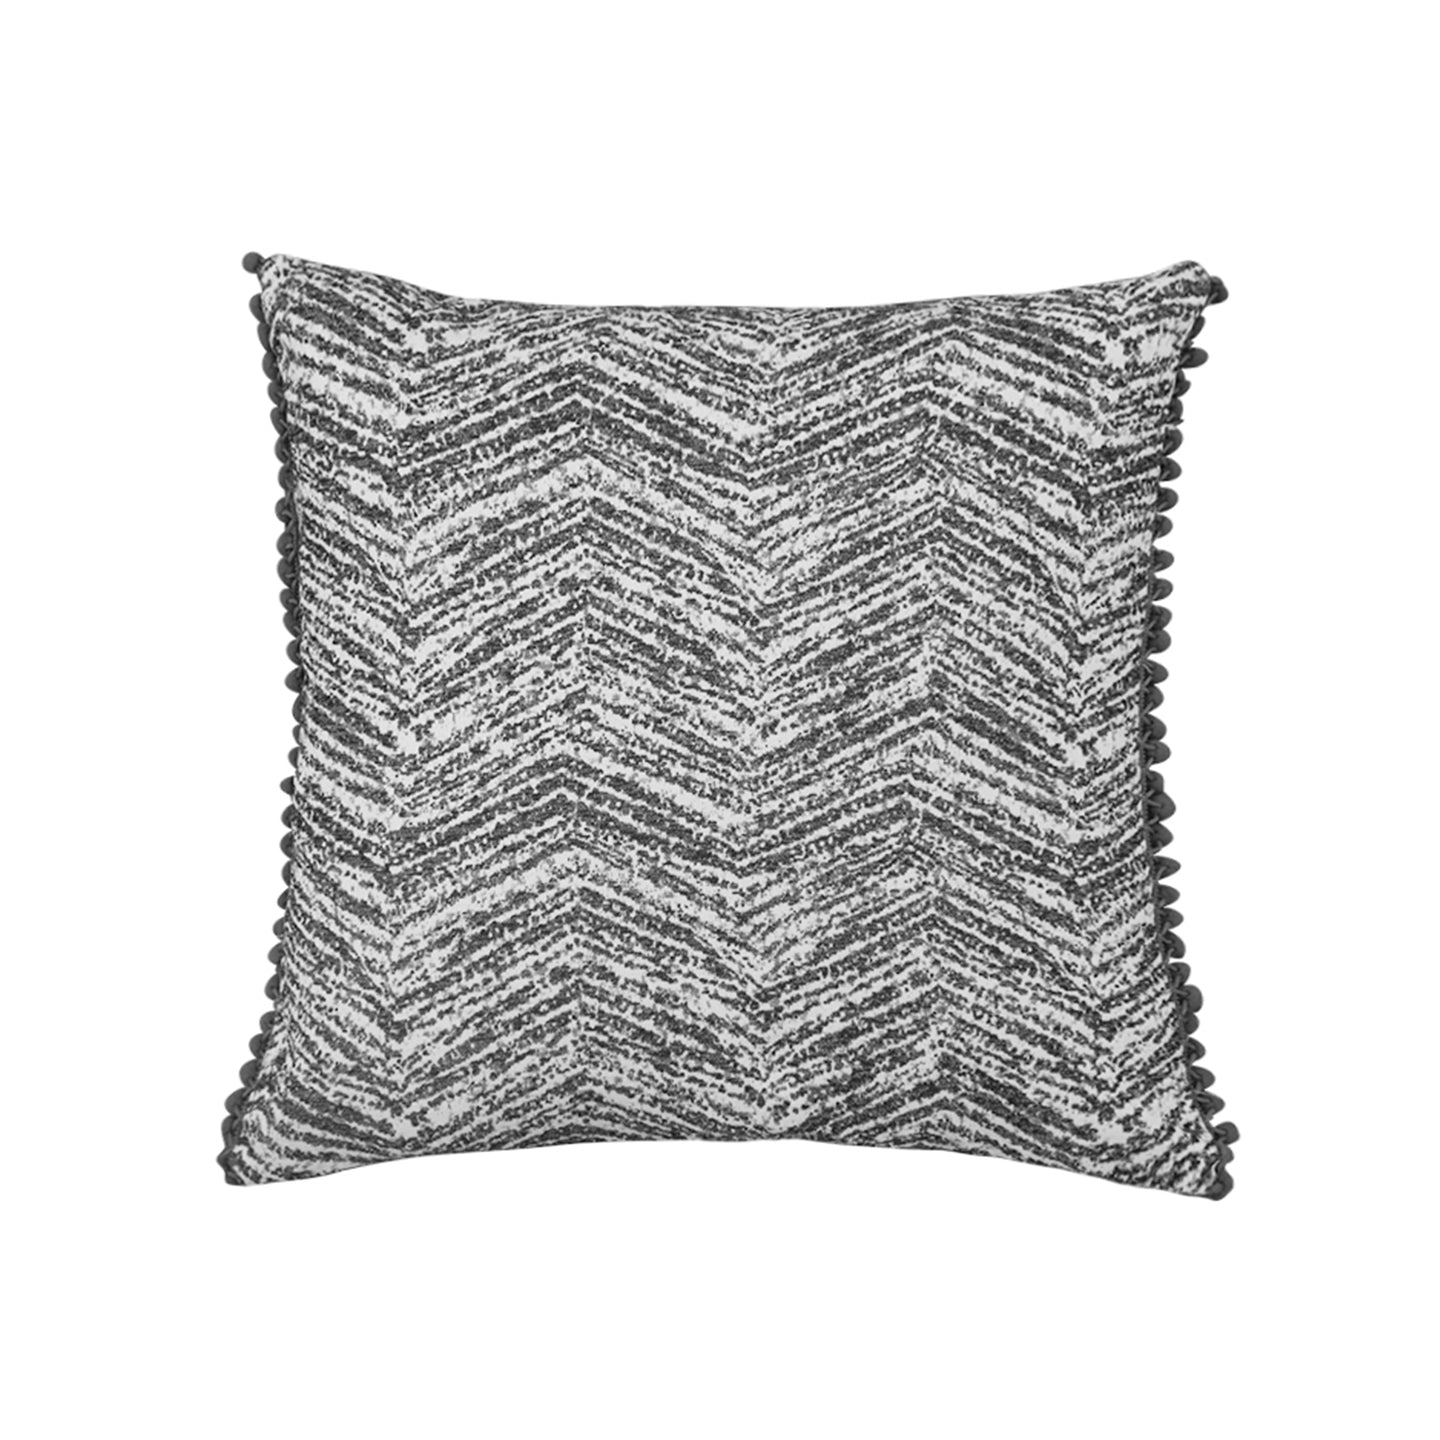 NAILHEAD PILLOW